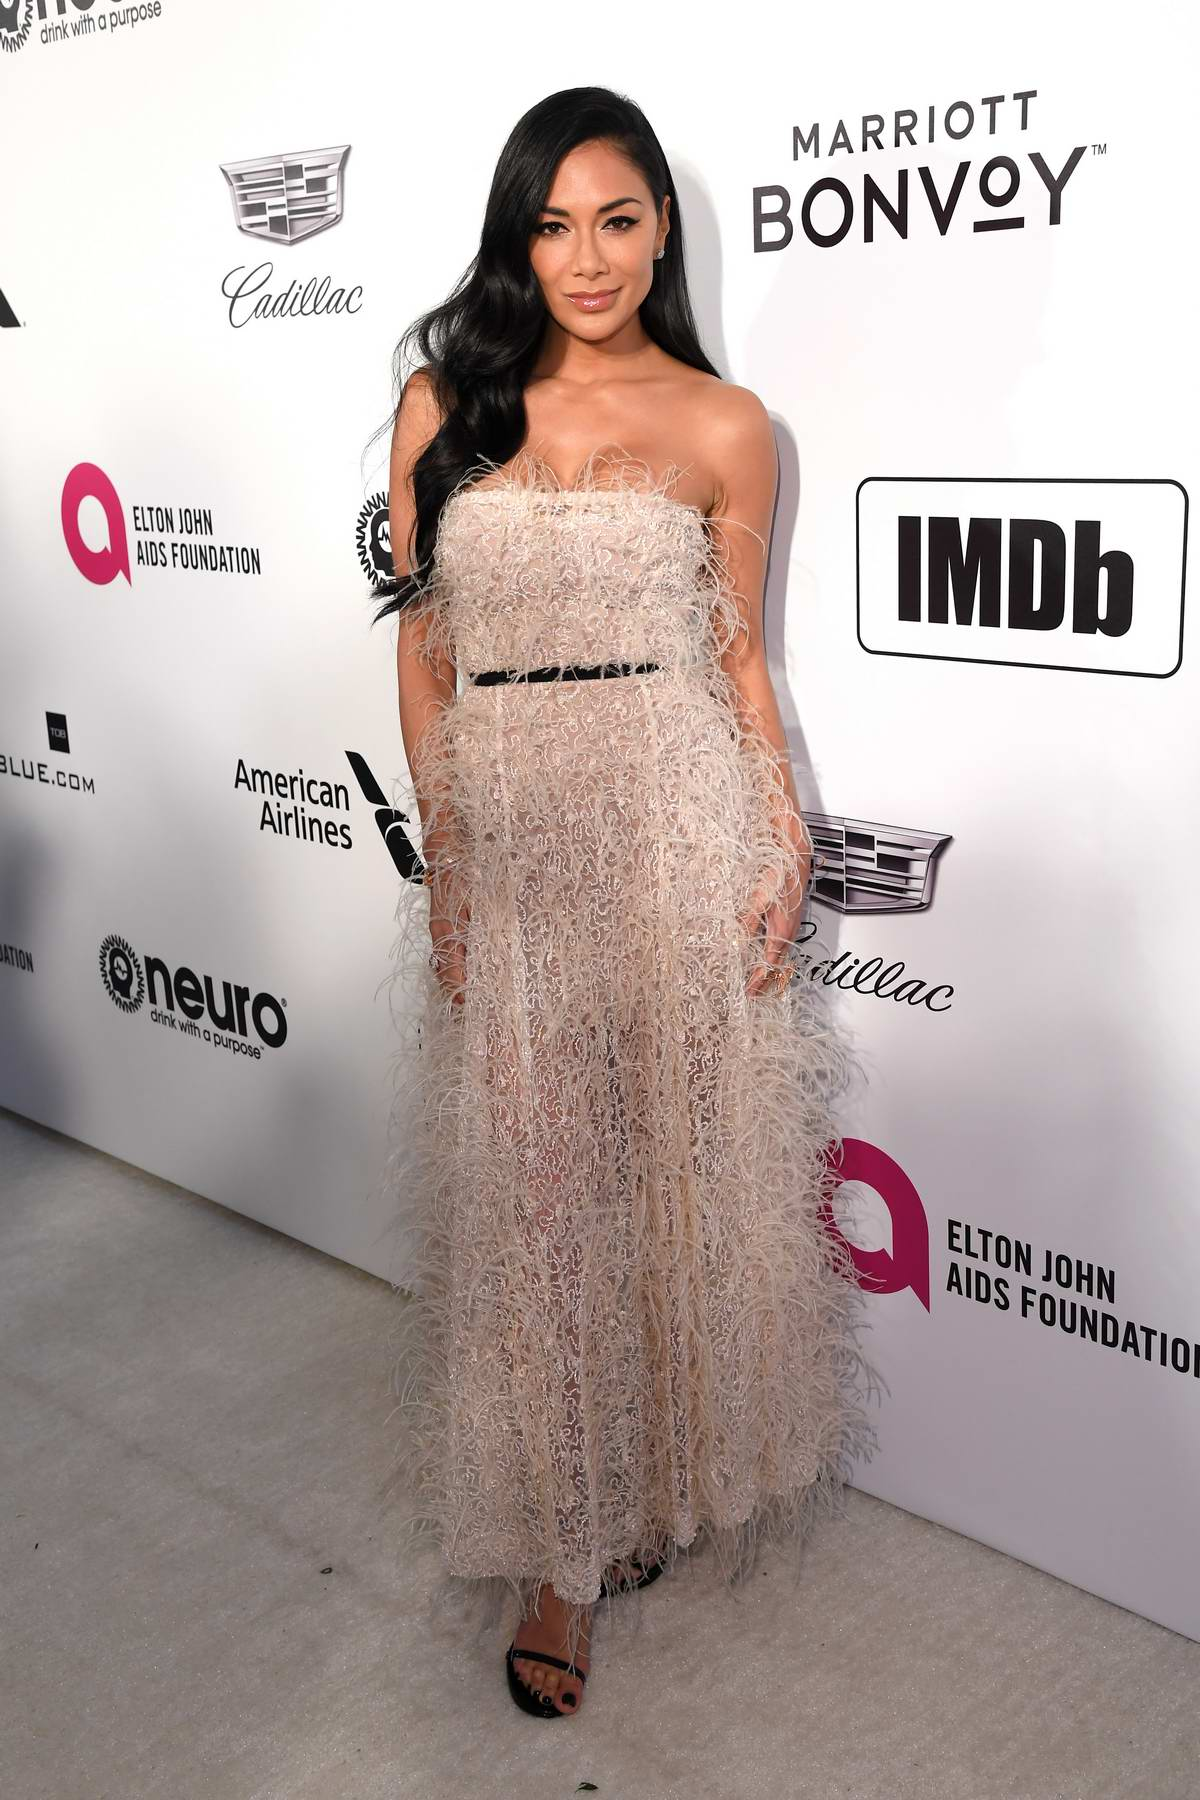 Nicole Scherzinger attends the 27th Annual Elton John AIDS Foundation Academy Awards Viewing Party in West Hollywood, Los Angeles